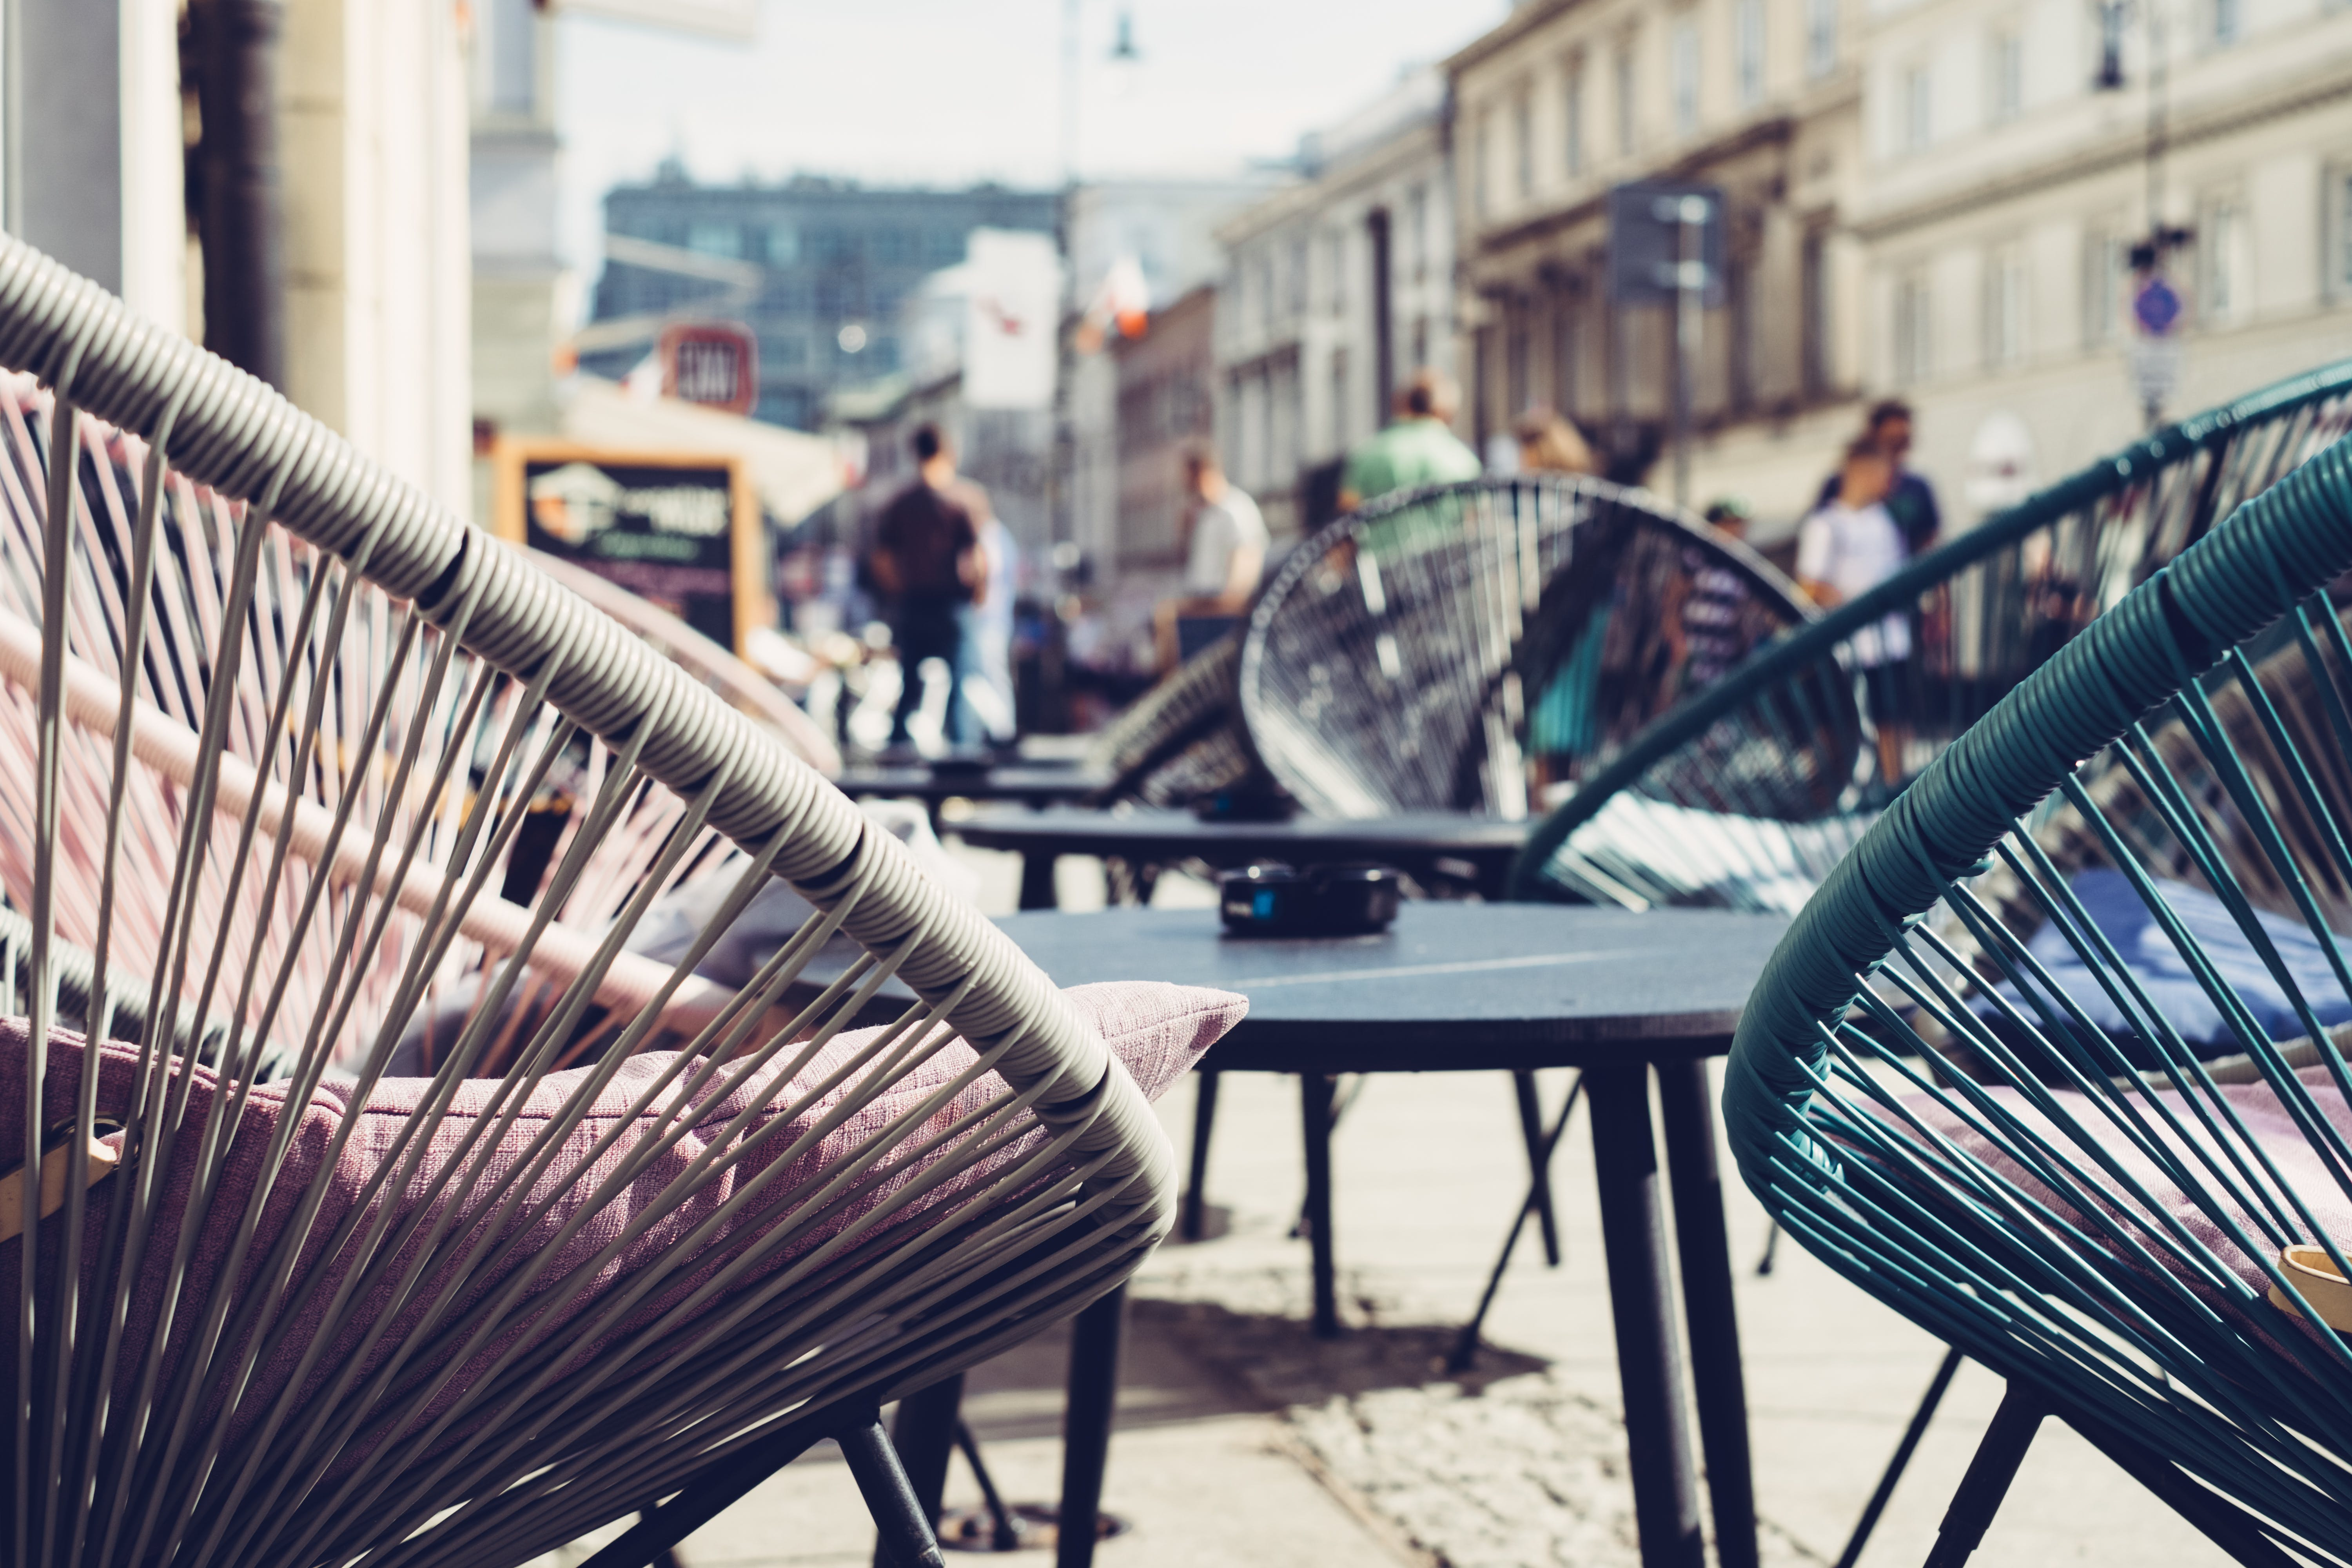 Selective Focus Photography of Patio Set Near Walking People